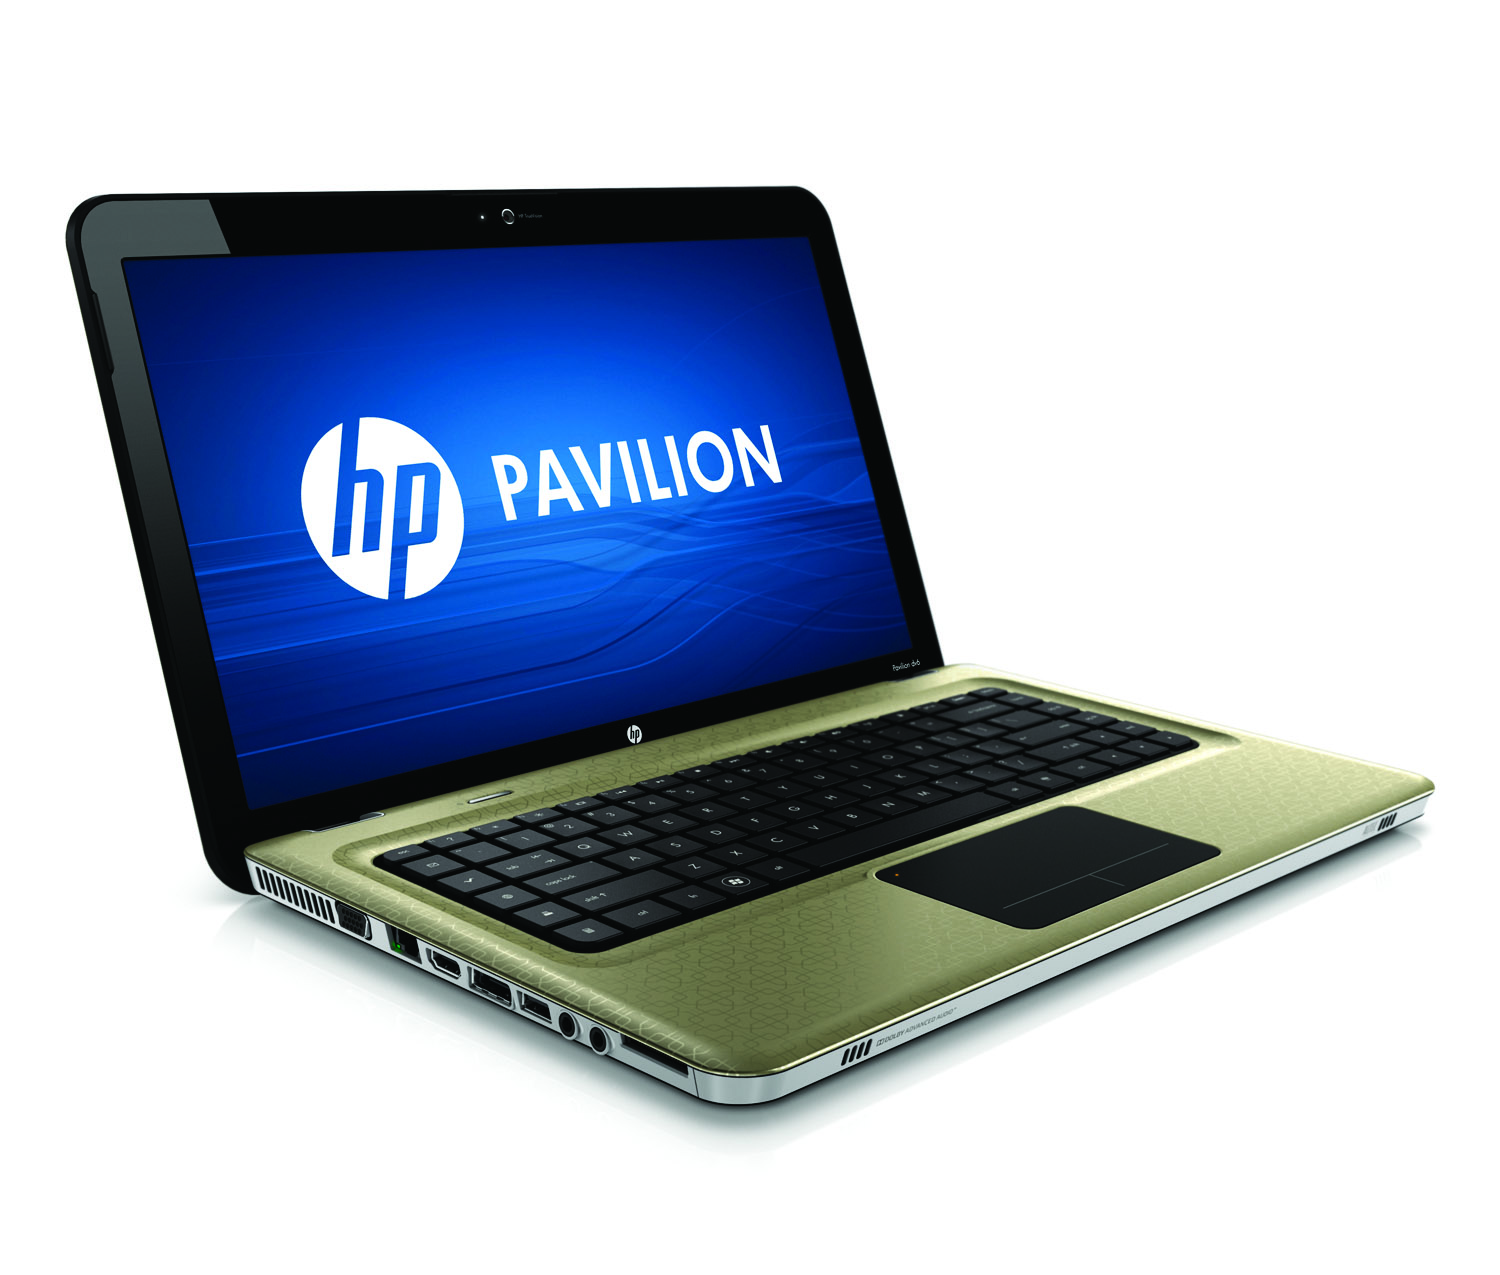 HP Pavilion dv6 Entertainment PC, champagne, front right open